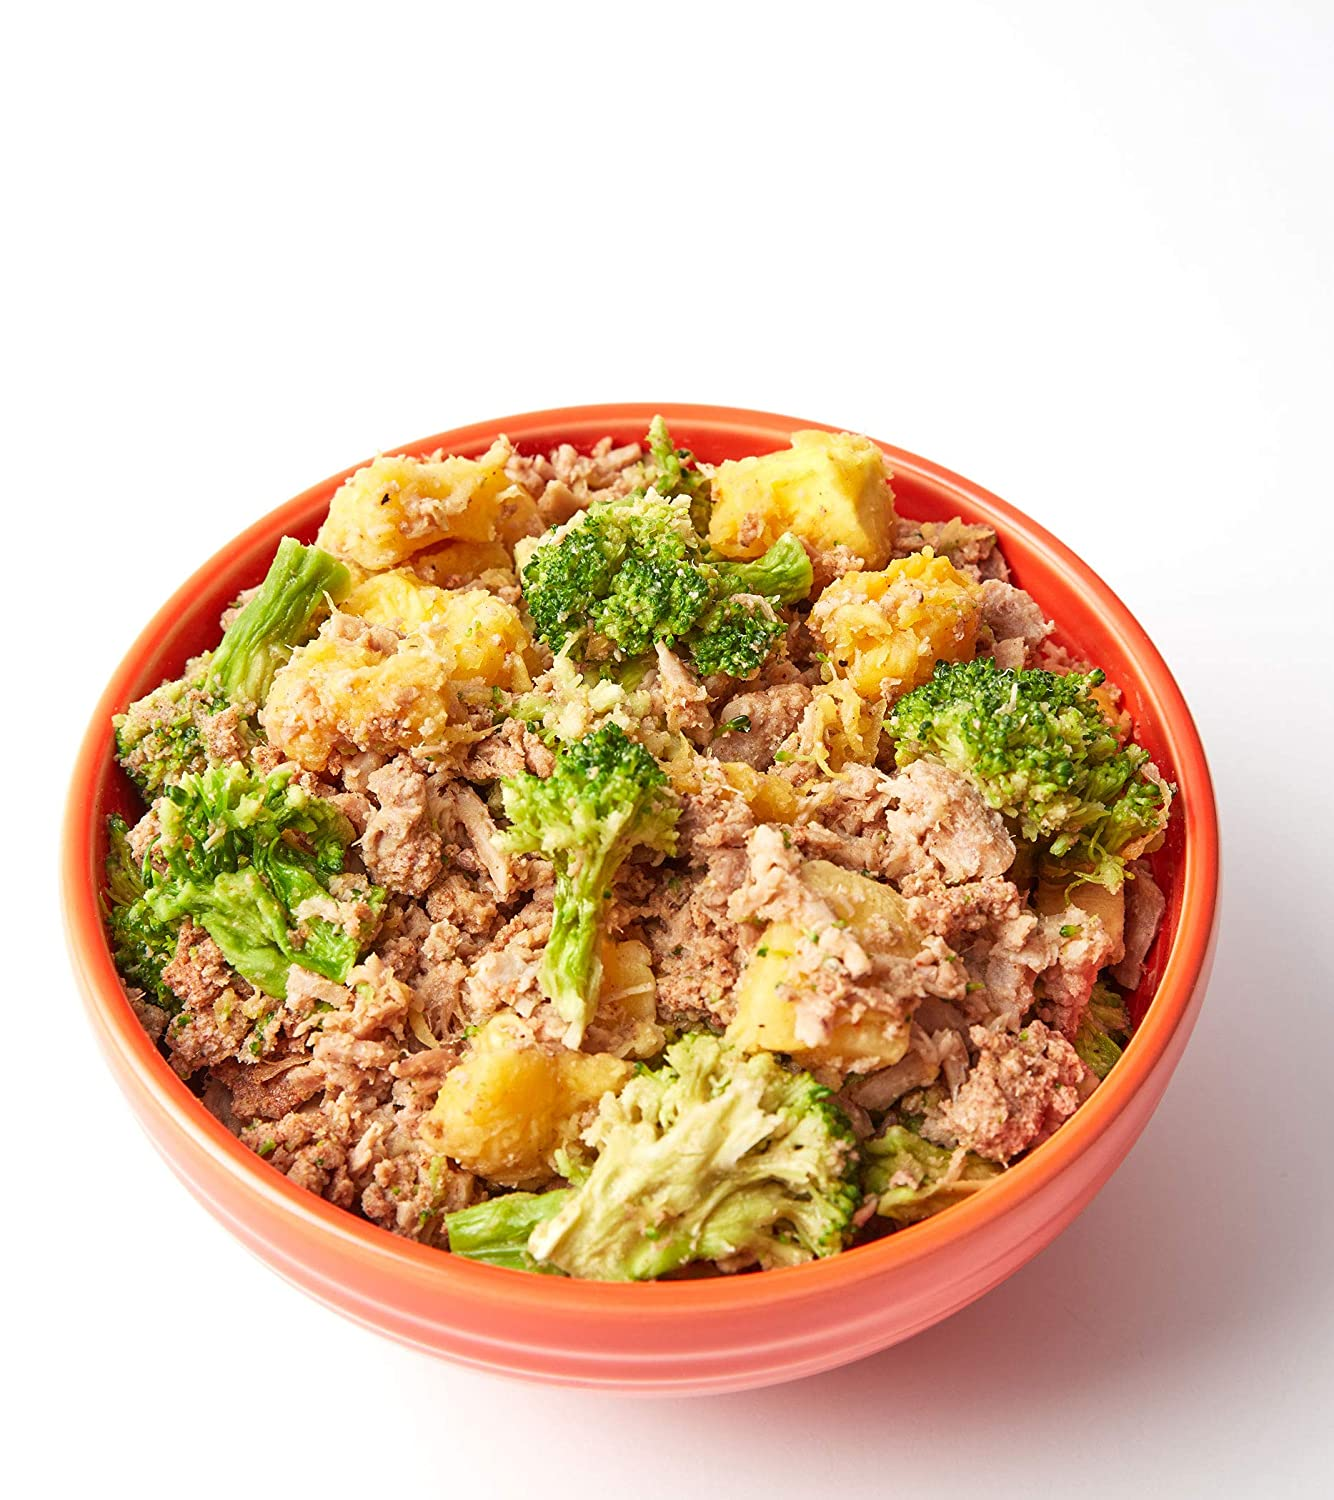 Elements Meals | Broccoli Cinnamon Pork | 5-Pack | Whole30 Approved | Meals on The Go | Delicious | High Protein |